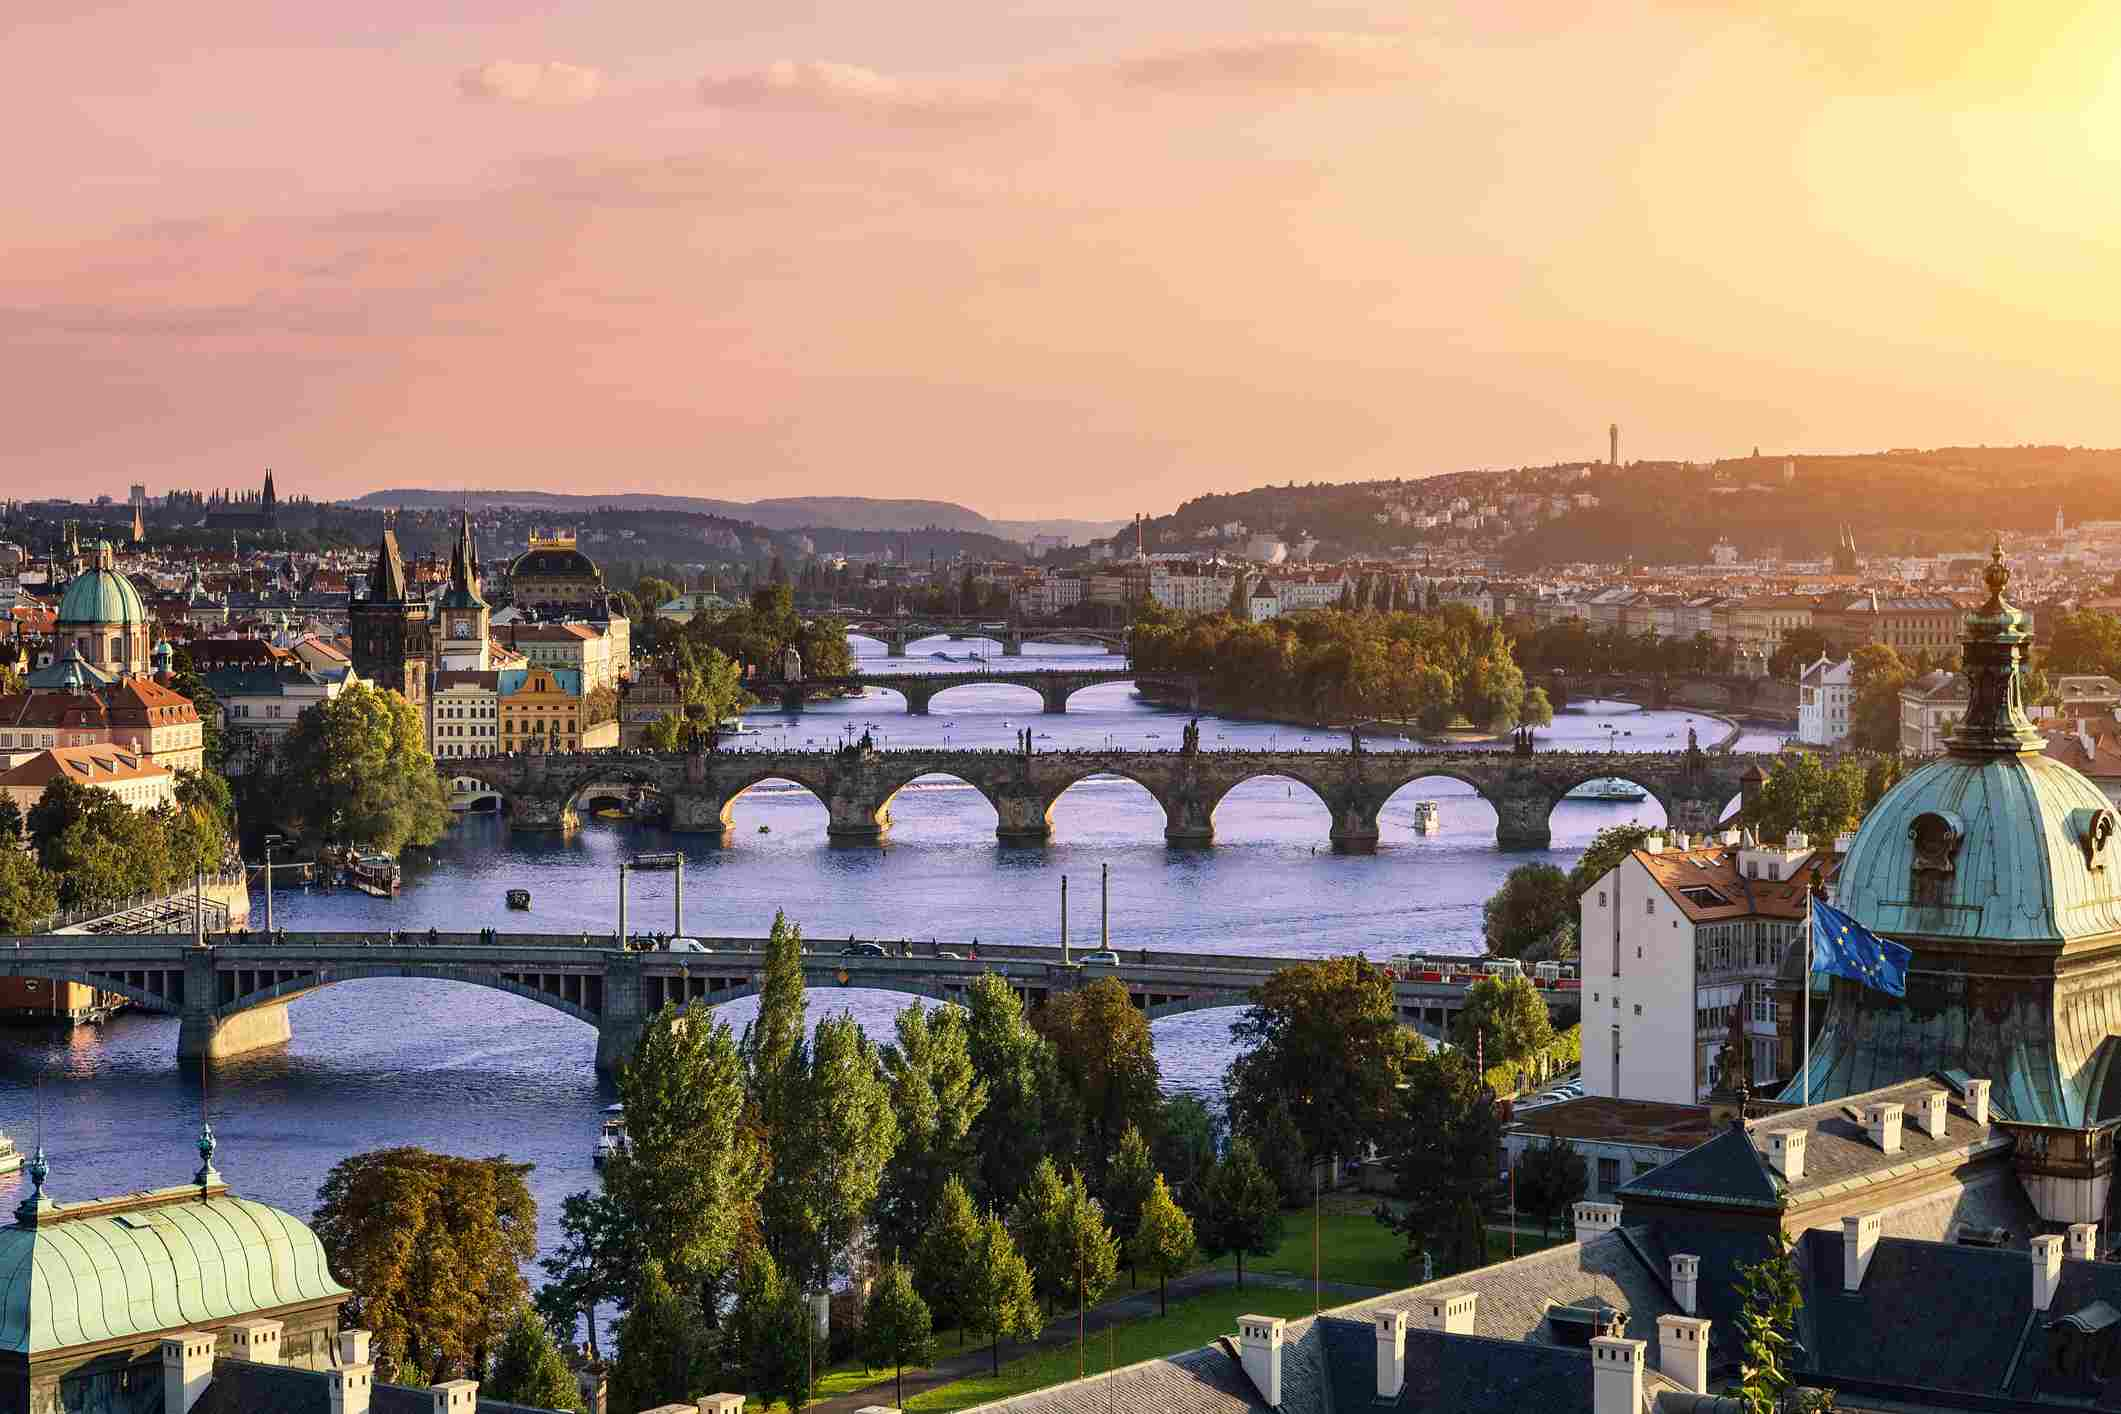 Top European Cities From Cheapest To Most Expensive